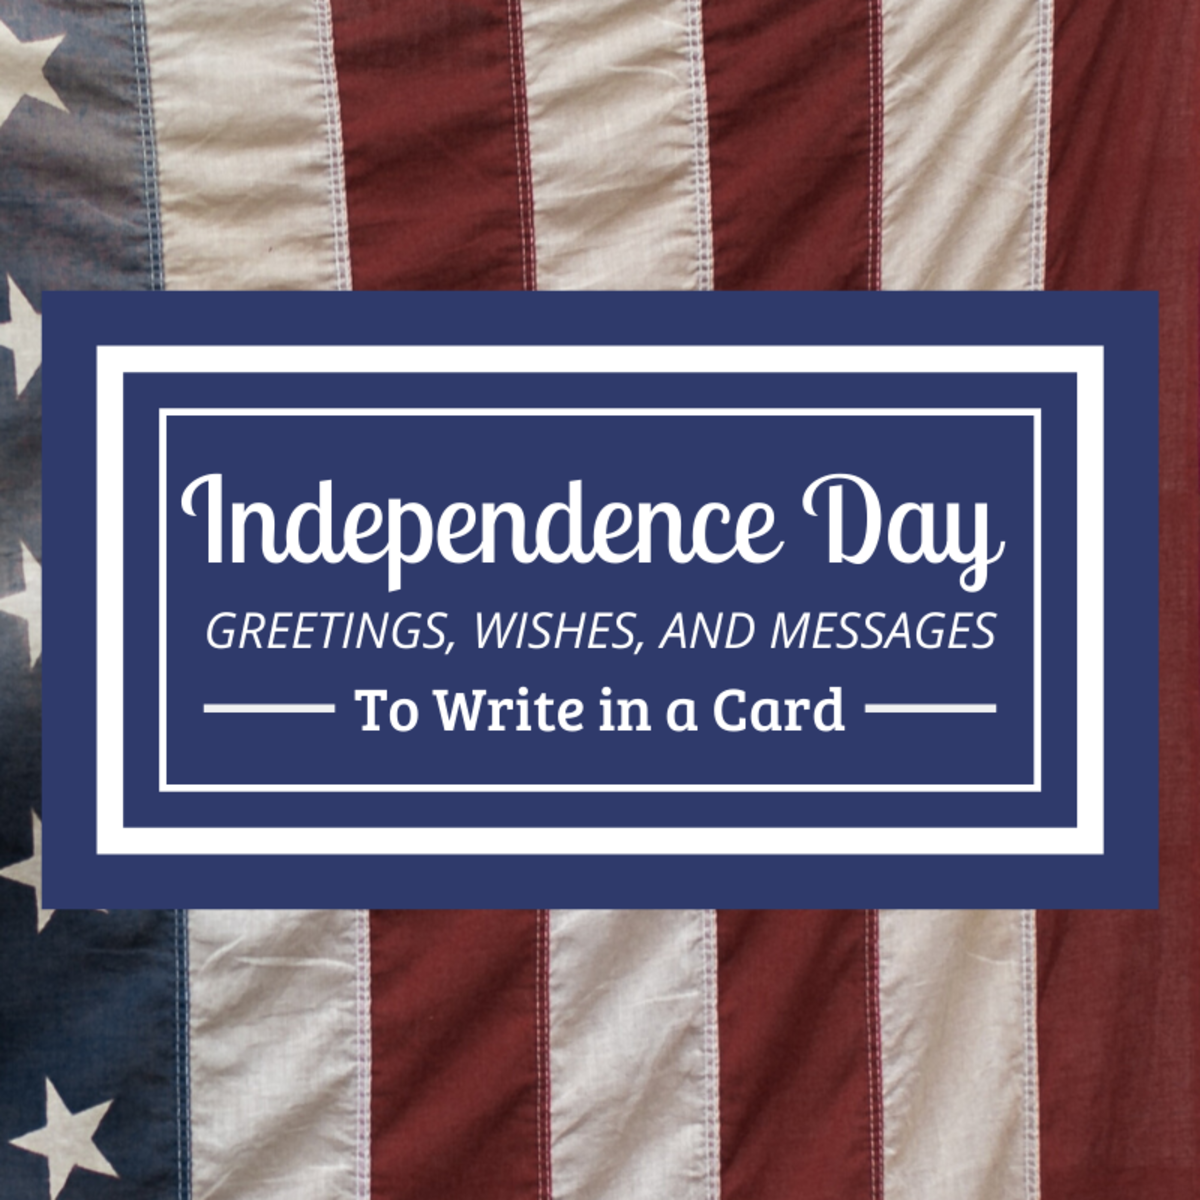 Struggling to compose an Independence Day card or text message? Use these examples to get started.